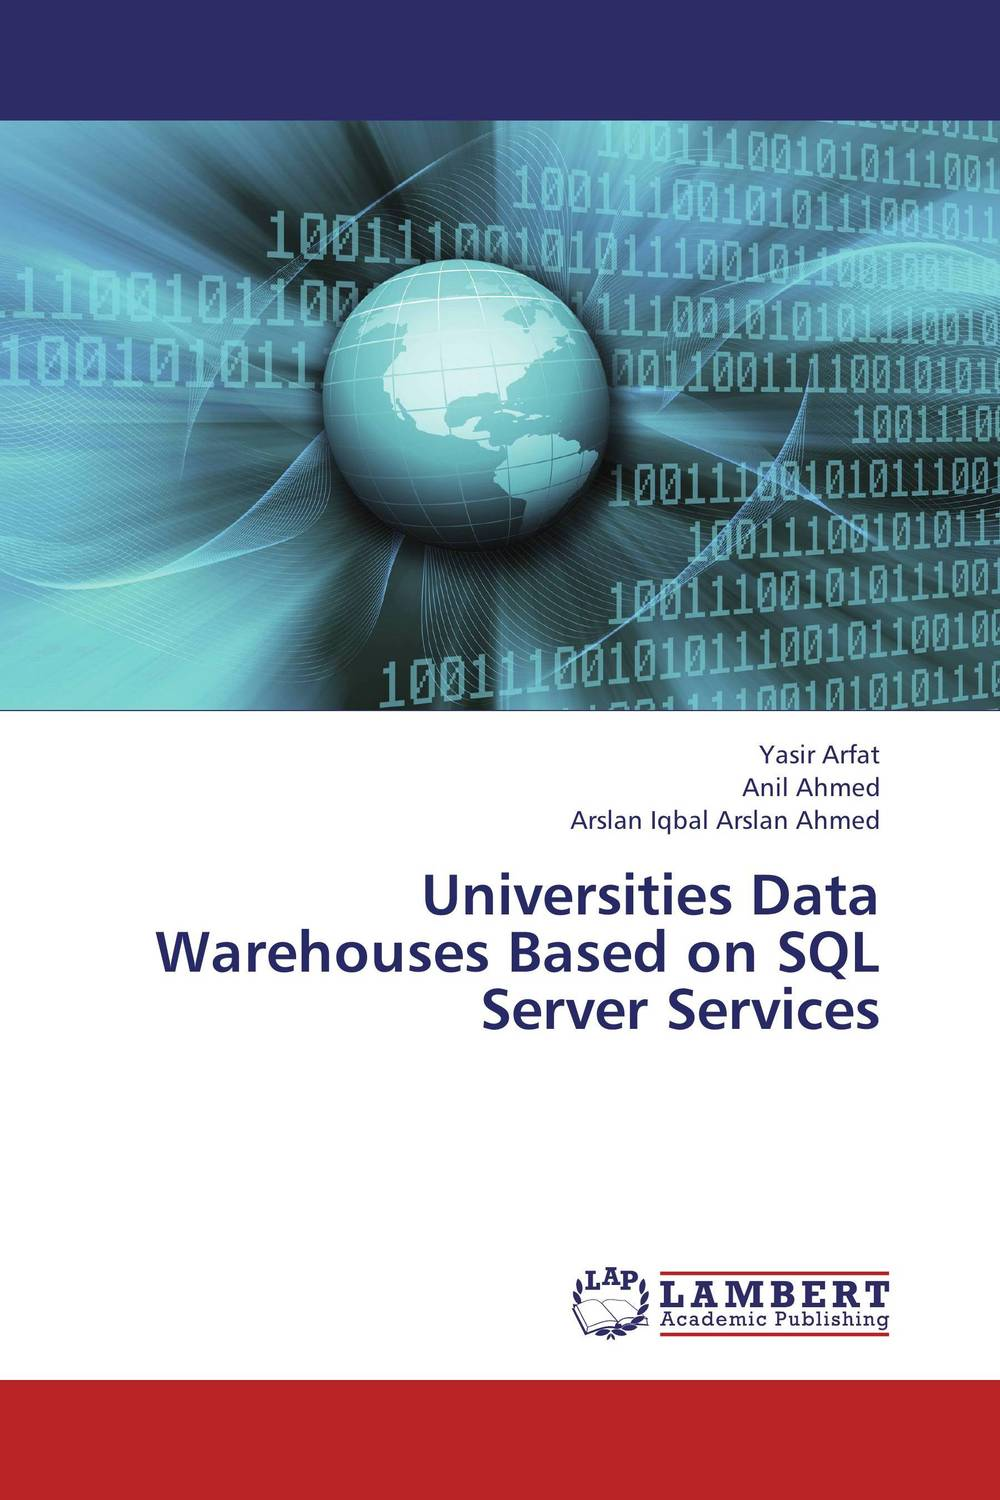 Universities Data Warehouses Based on SQL Server Services robert hillard information driven business how to manage data and information for maximum advantage